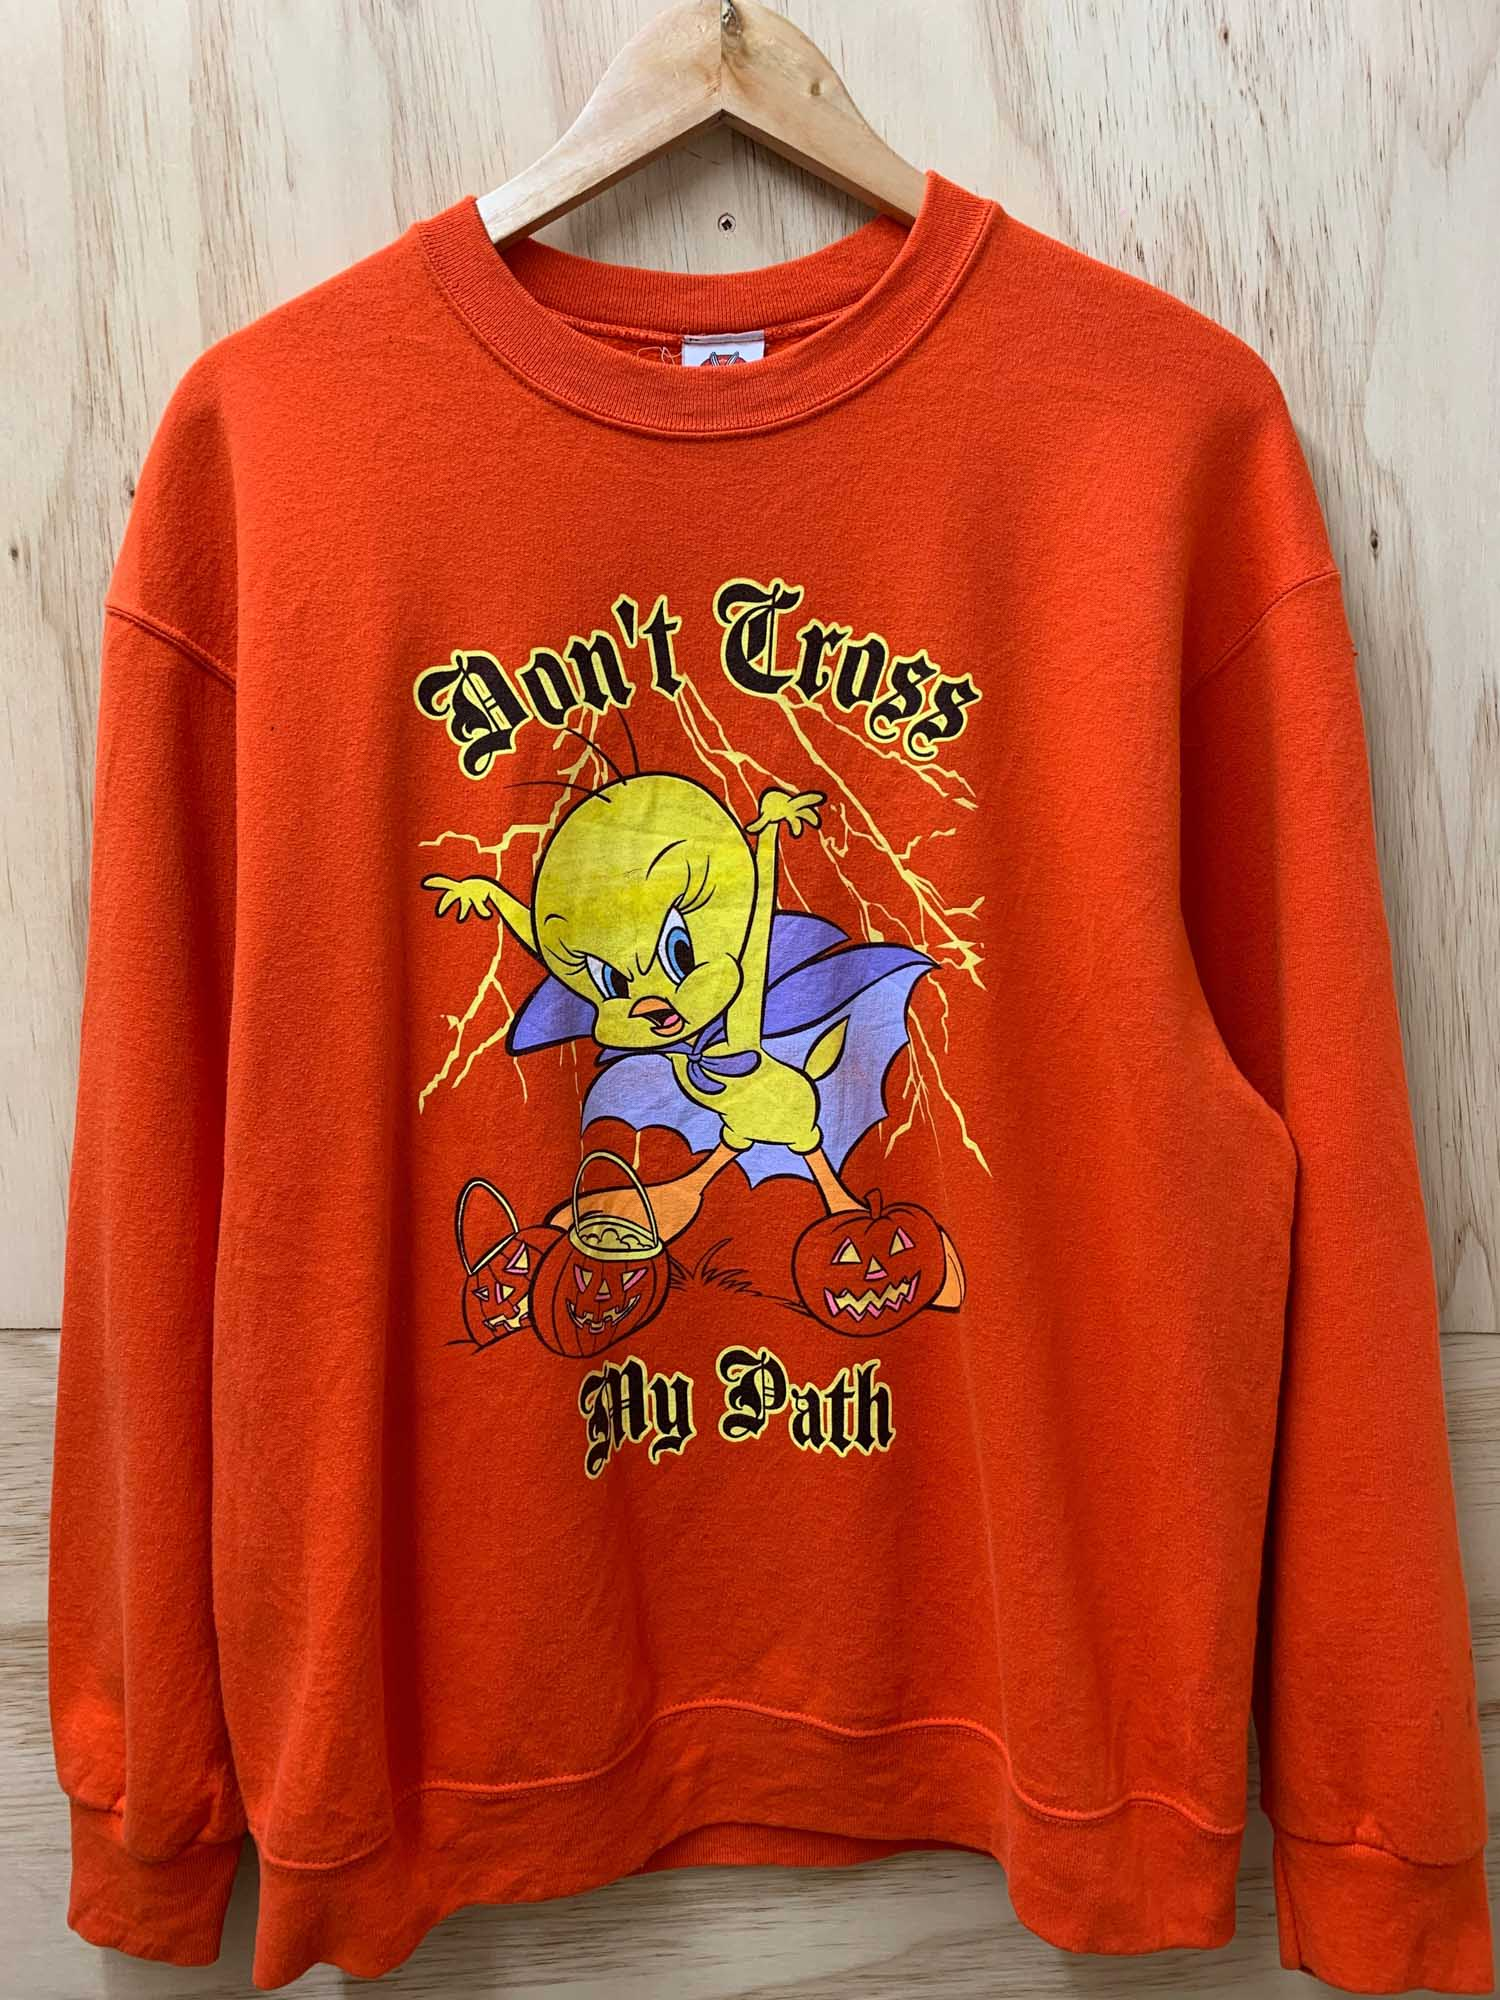 Vintage Tweety Bird Looney Tunes Crewneck